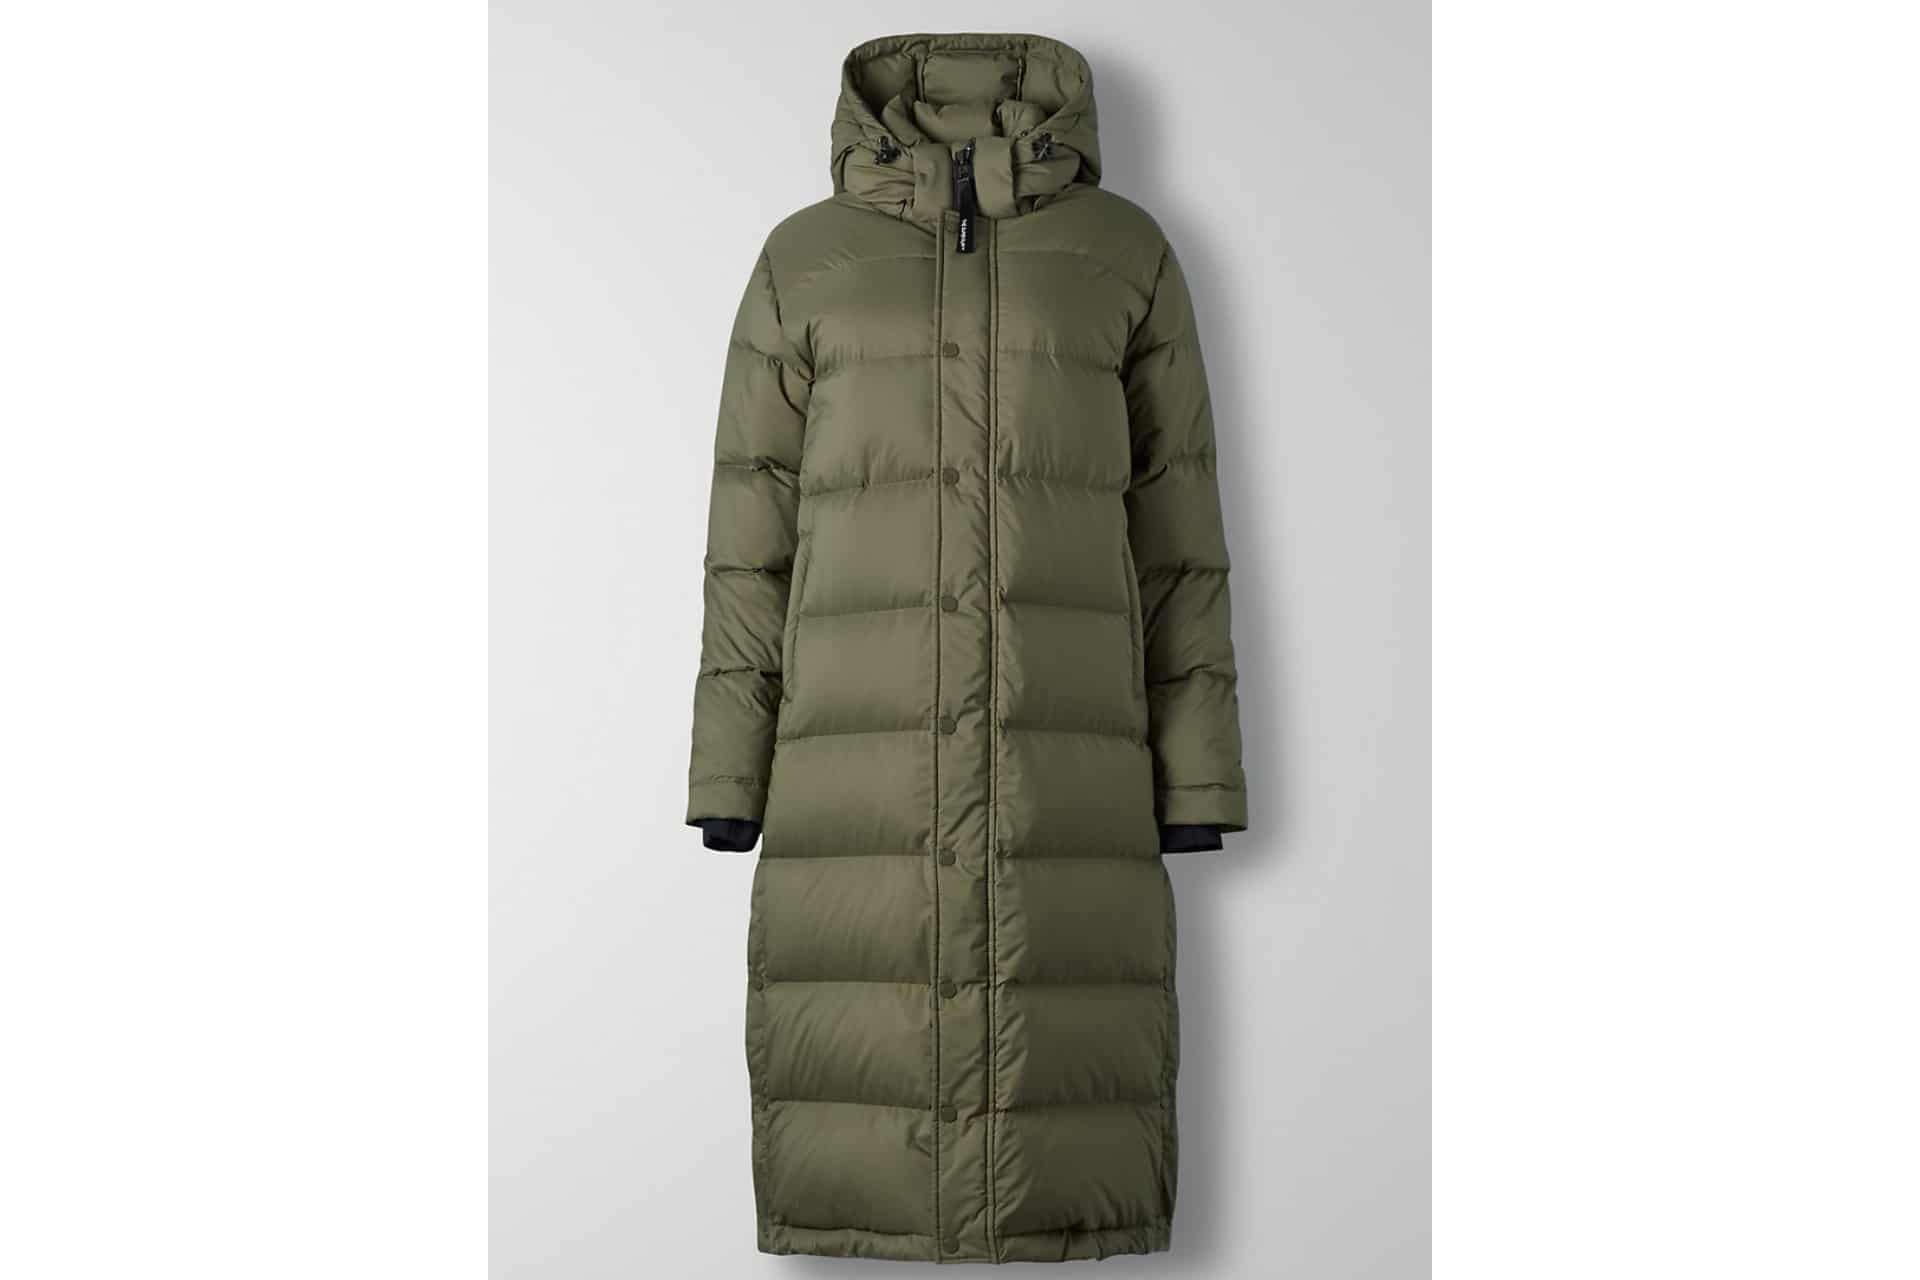 Green long puffer jacket with hood